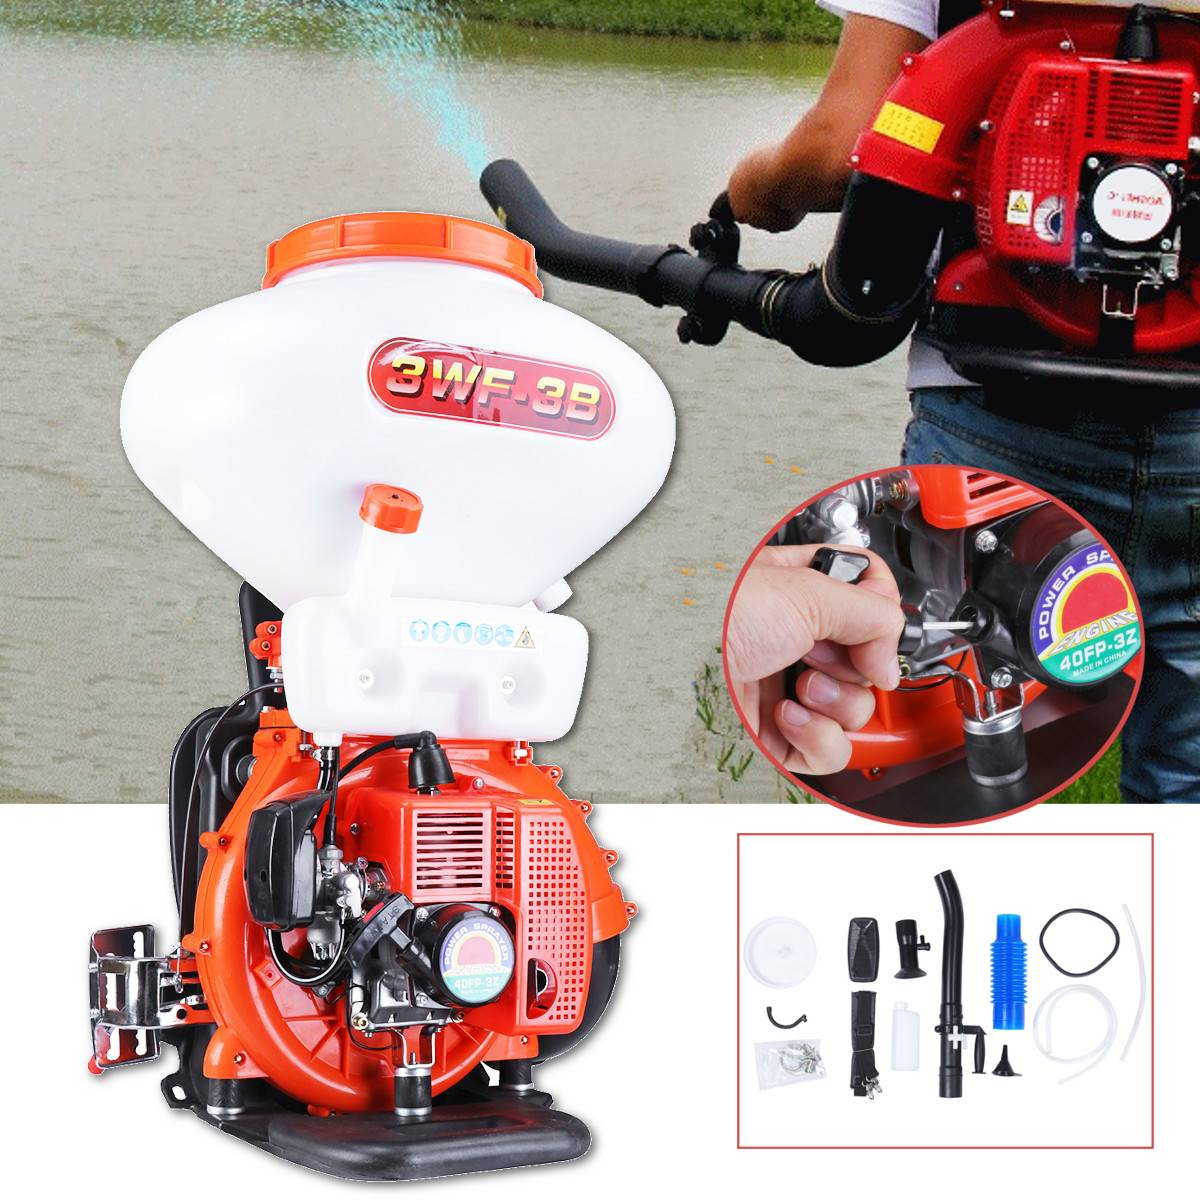 41.5cc 26L Agricultural Mist Duster Power Sprayer Gasoline Powered 3WF-3B Backpack Blower Fogger Garden Tools Pest Control